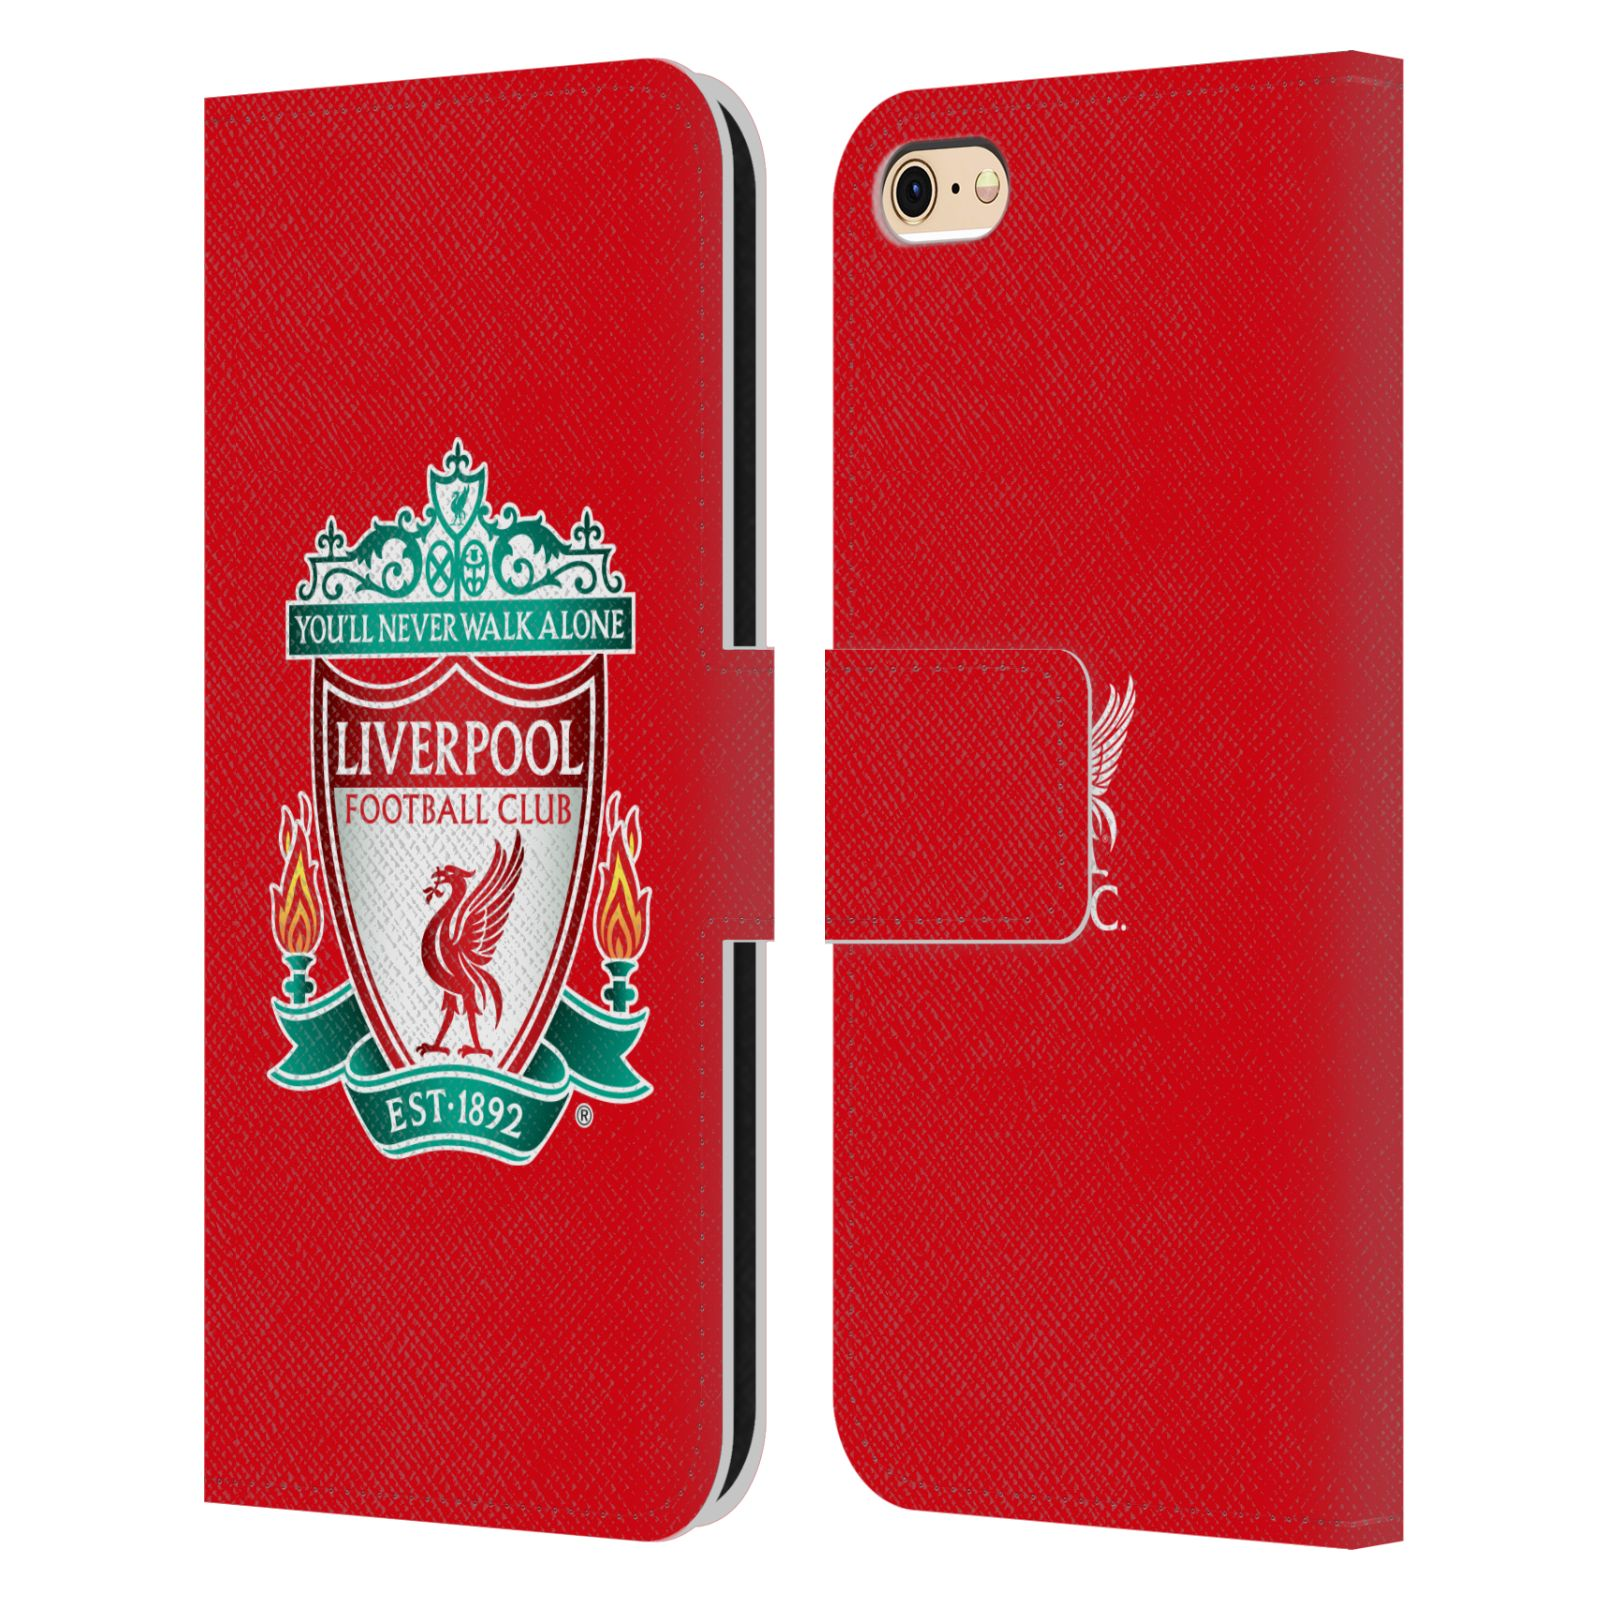 deksel til iphone 4 liverpool